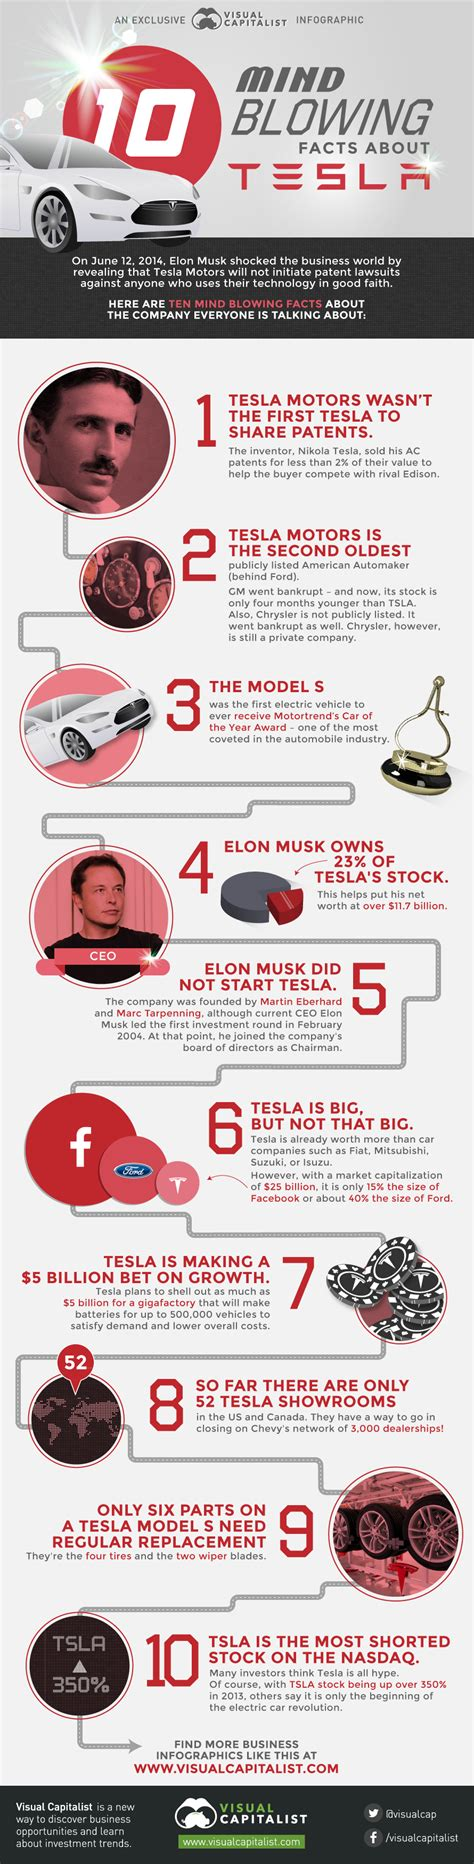 Tesla Info 10 Amazing Tesla Facts Infographic Tesla